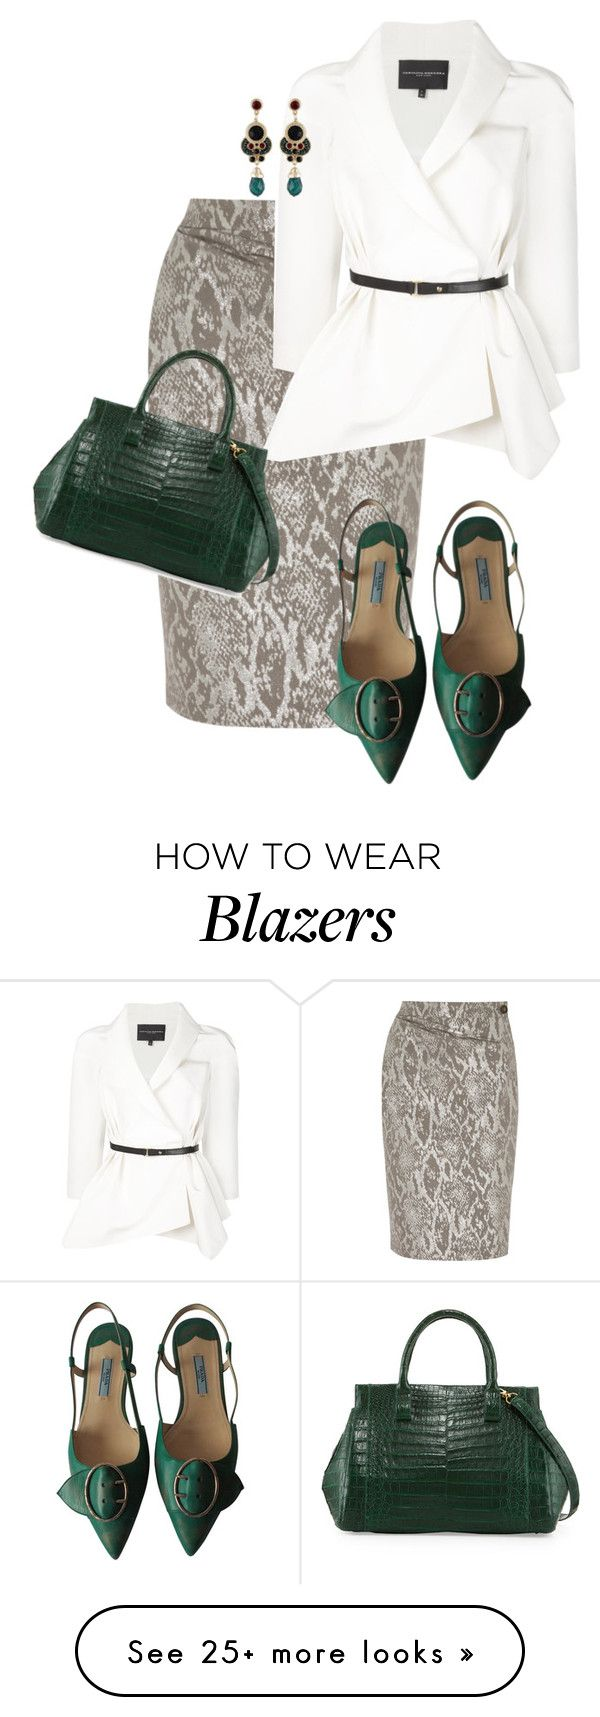 """""""Snake in the Grass"""" by toots2271 on Polyvore featuring Vivienne Westwood Anglomania, Carolina Herrera, Prada, Nancy Gonzalez, women's clothing, women, female, woman, misses and juniors"""